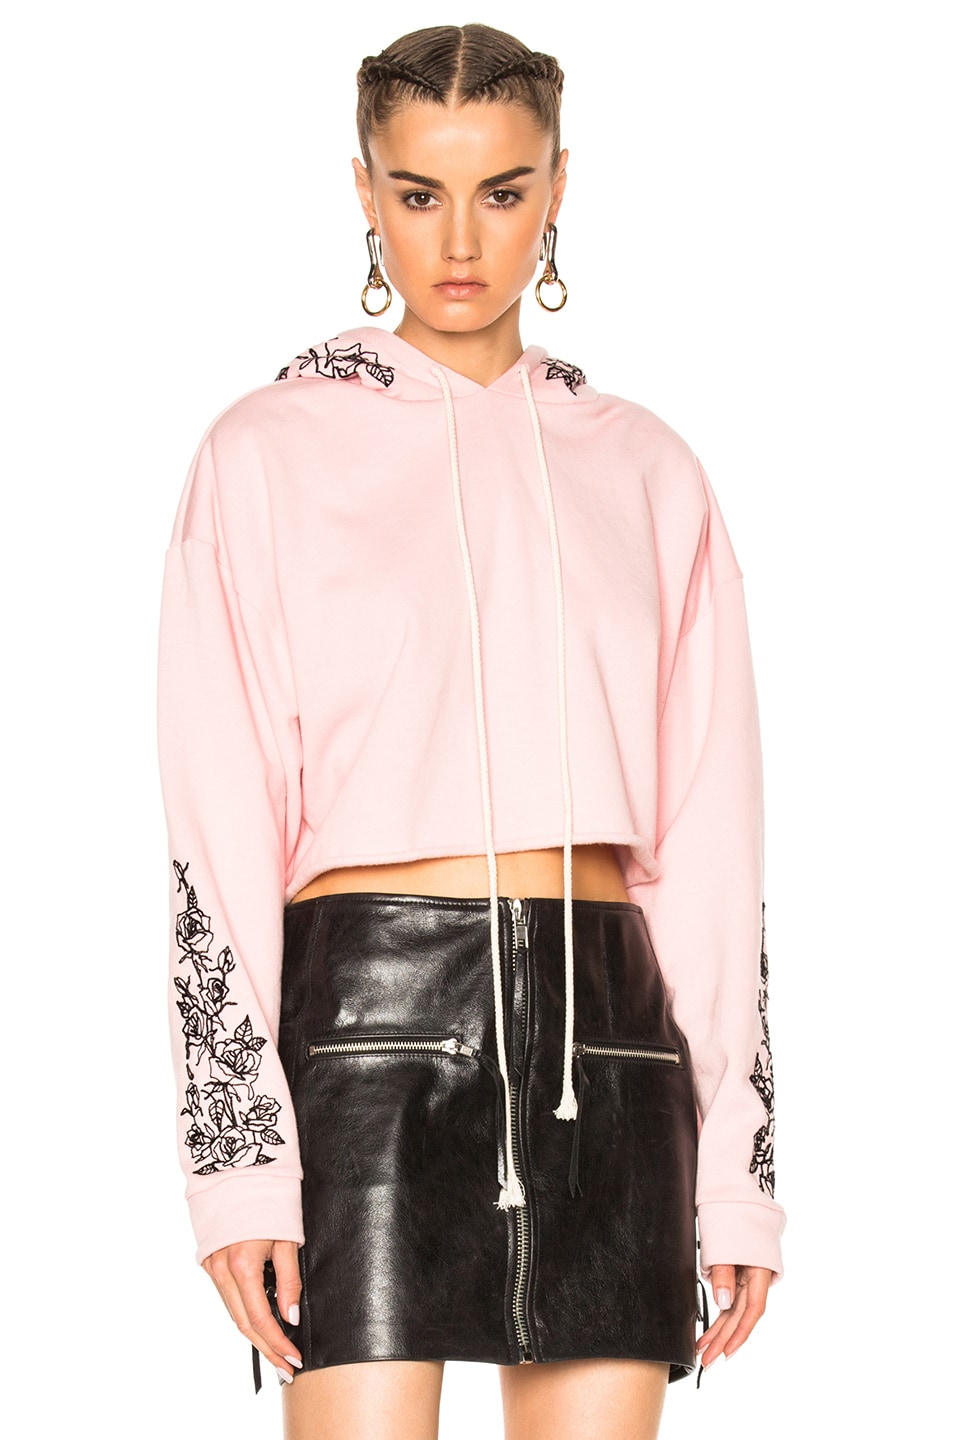 Image 1 of Adaptation x Chain Gang for FWRD Cropped Black Roses Hoodie in Pink